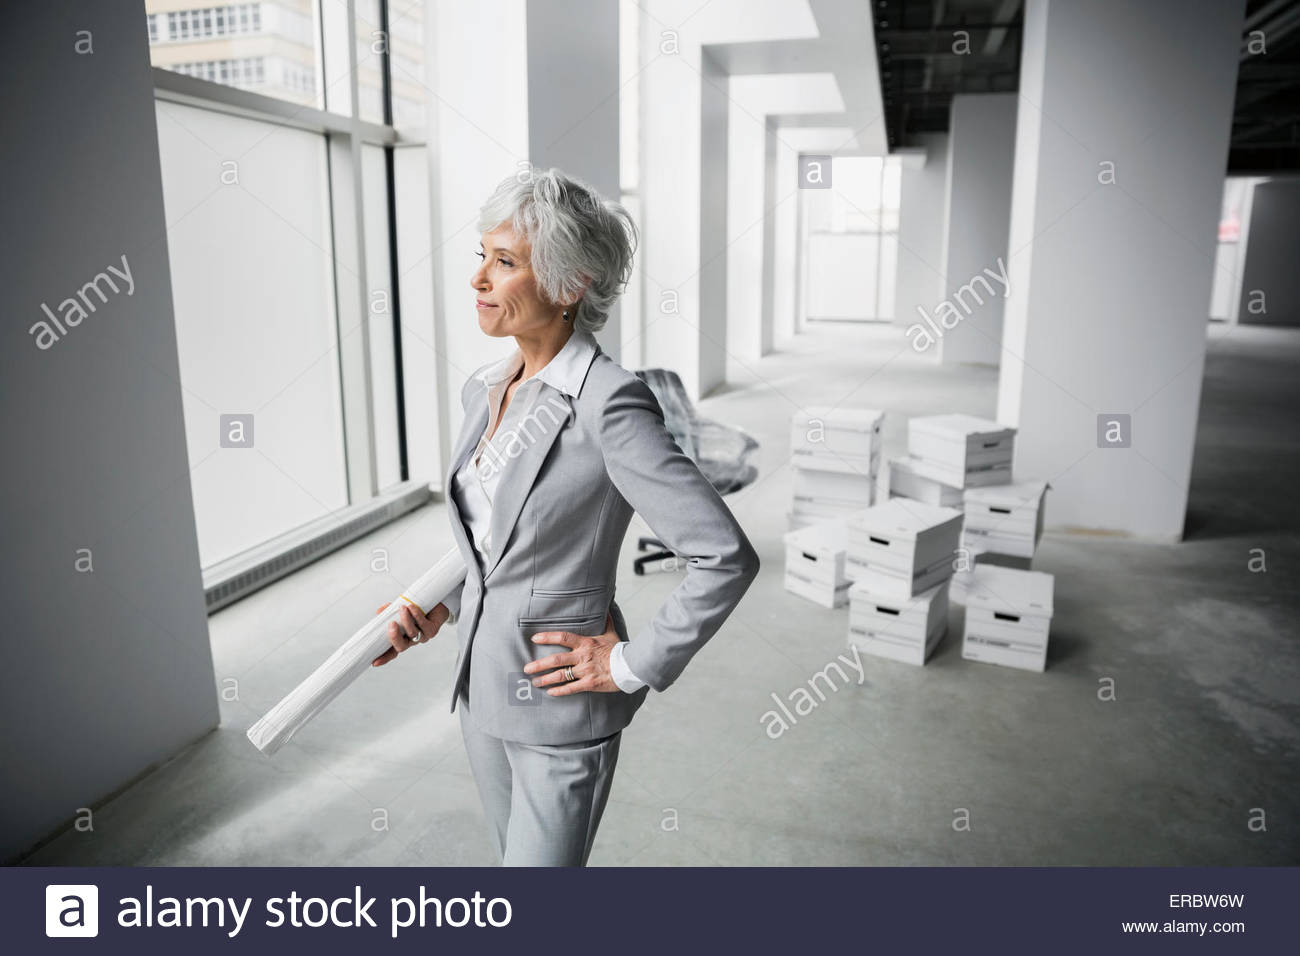 Confident architect with blueprints in new office - Stock Image